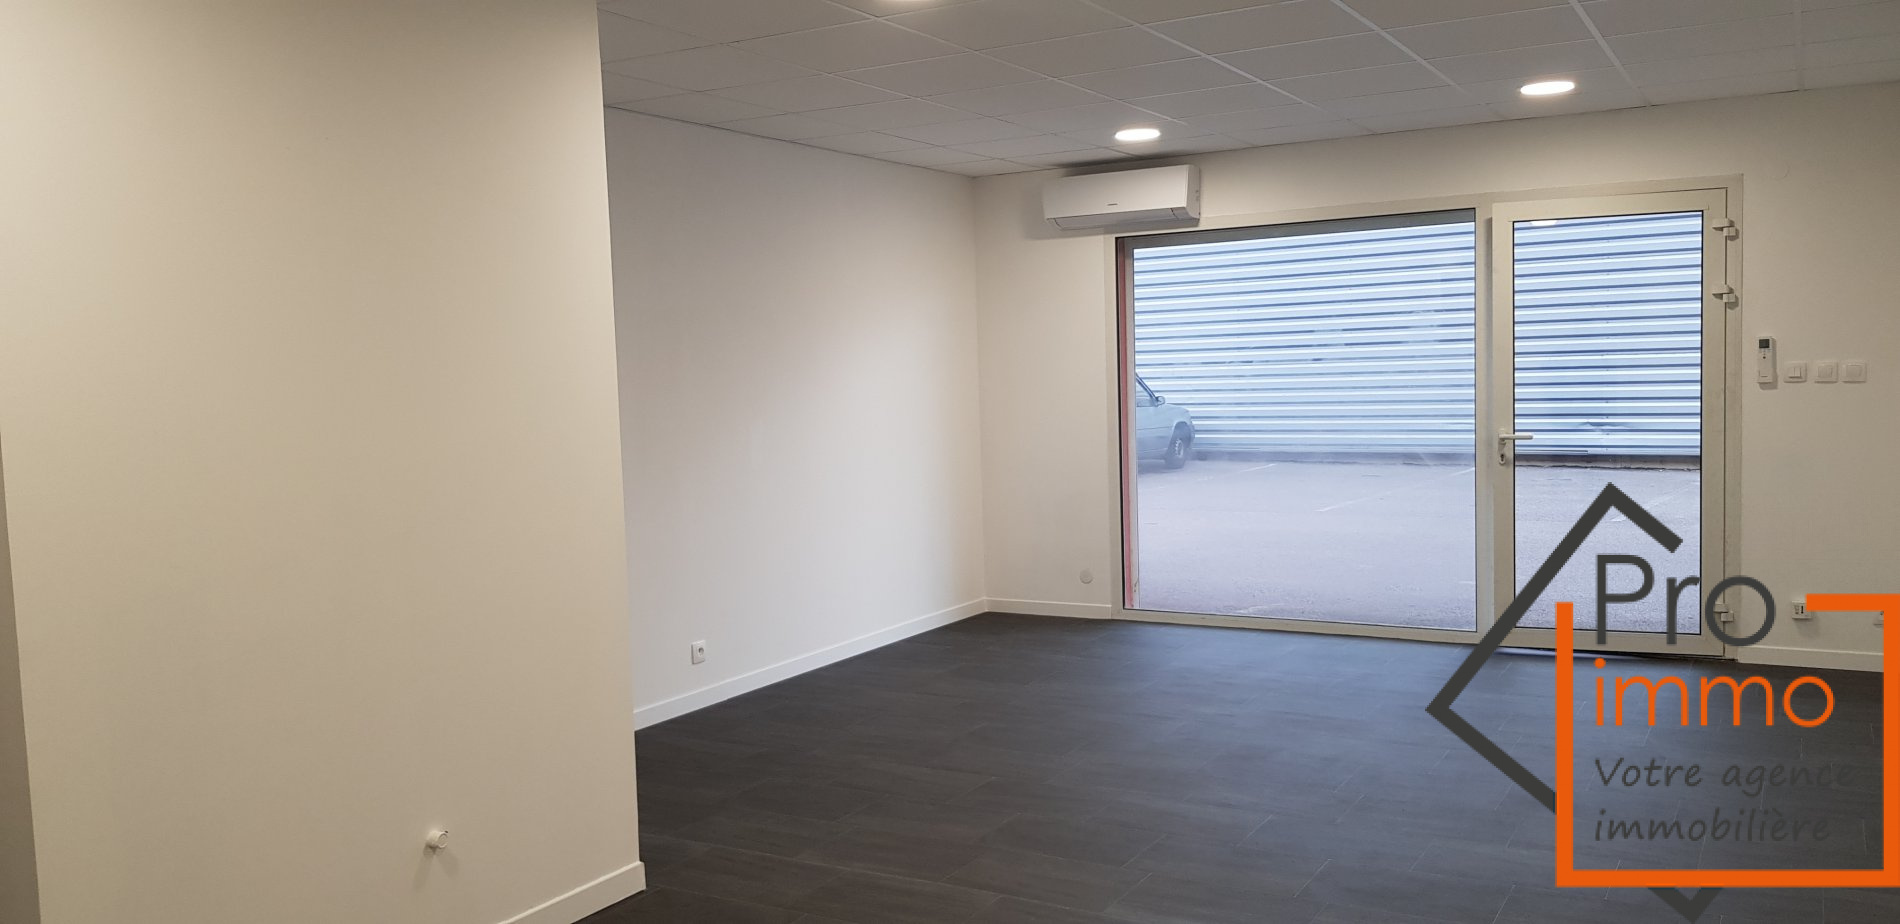 Location Immobilier Professionnel Local commercial Saint-Nazaire 66570